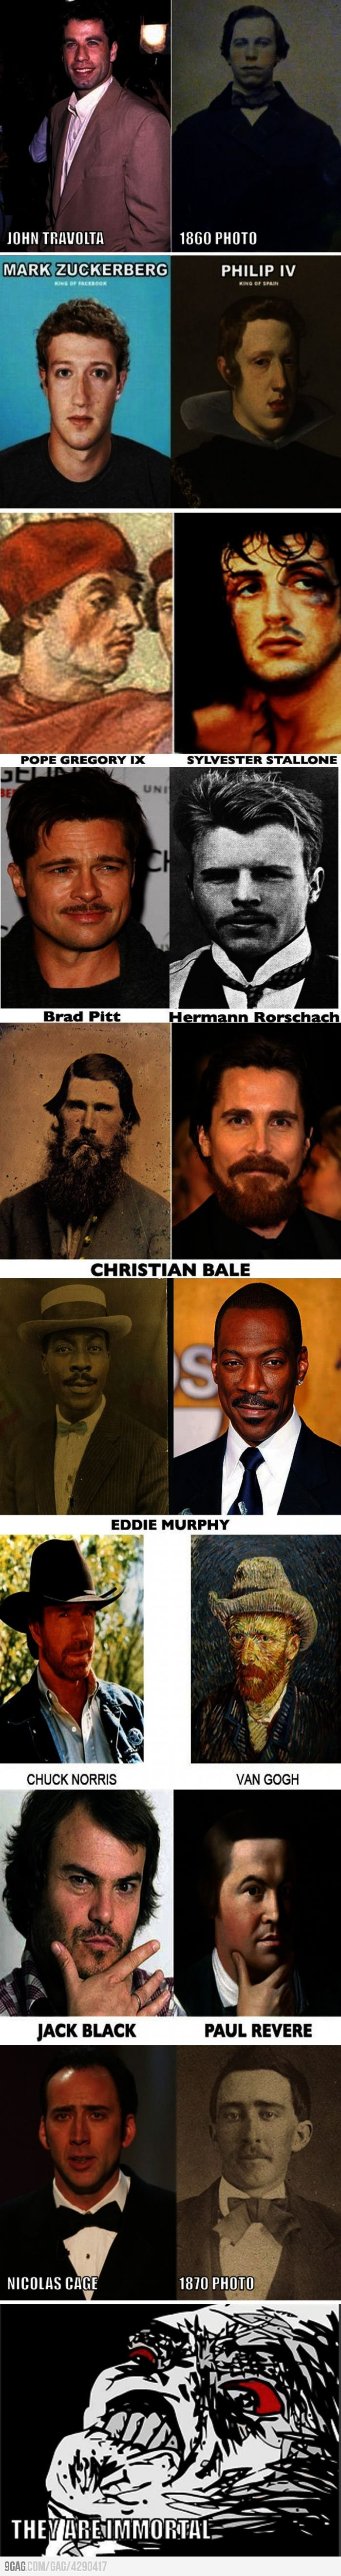 MIND = BLOWN!    B*tch please, I'm immortalEddie Murphy, Christian Bale, Time Travel, Paste Life, Immortal, Funny, Holy Cows, Old Photos, Time Lord